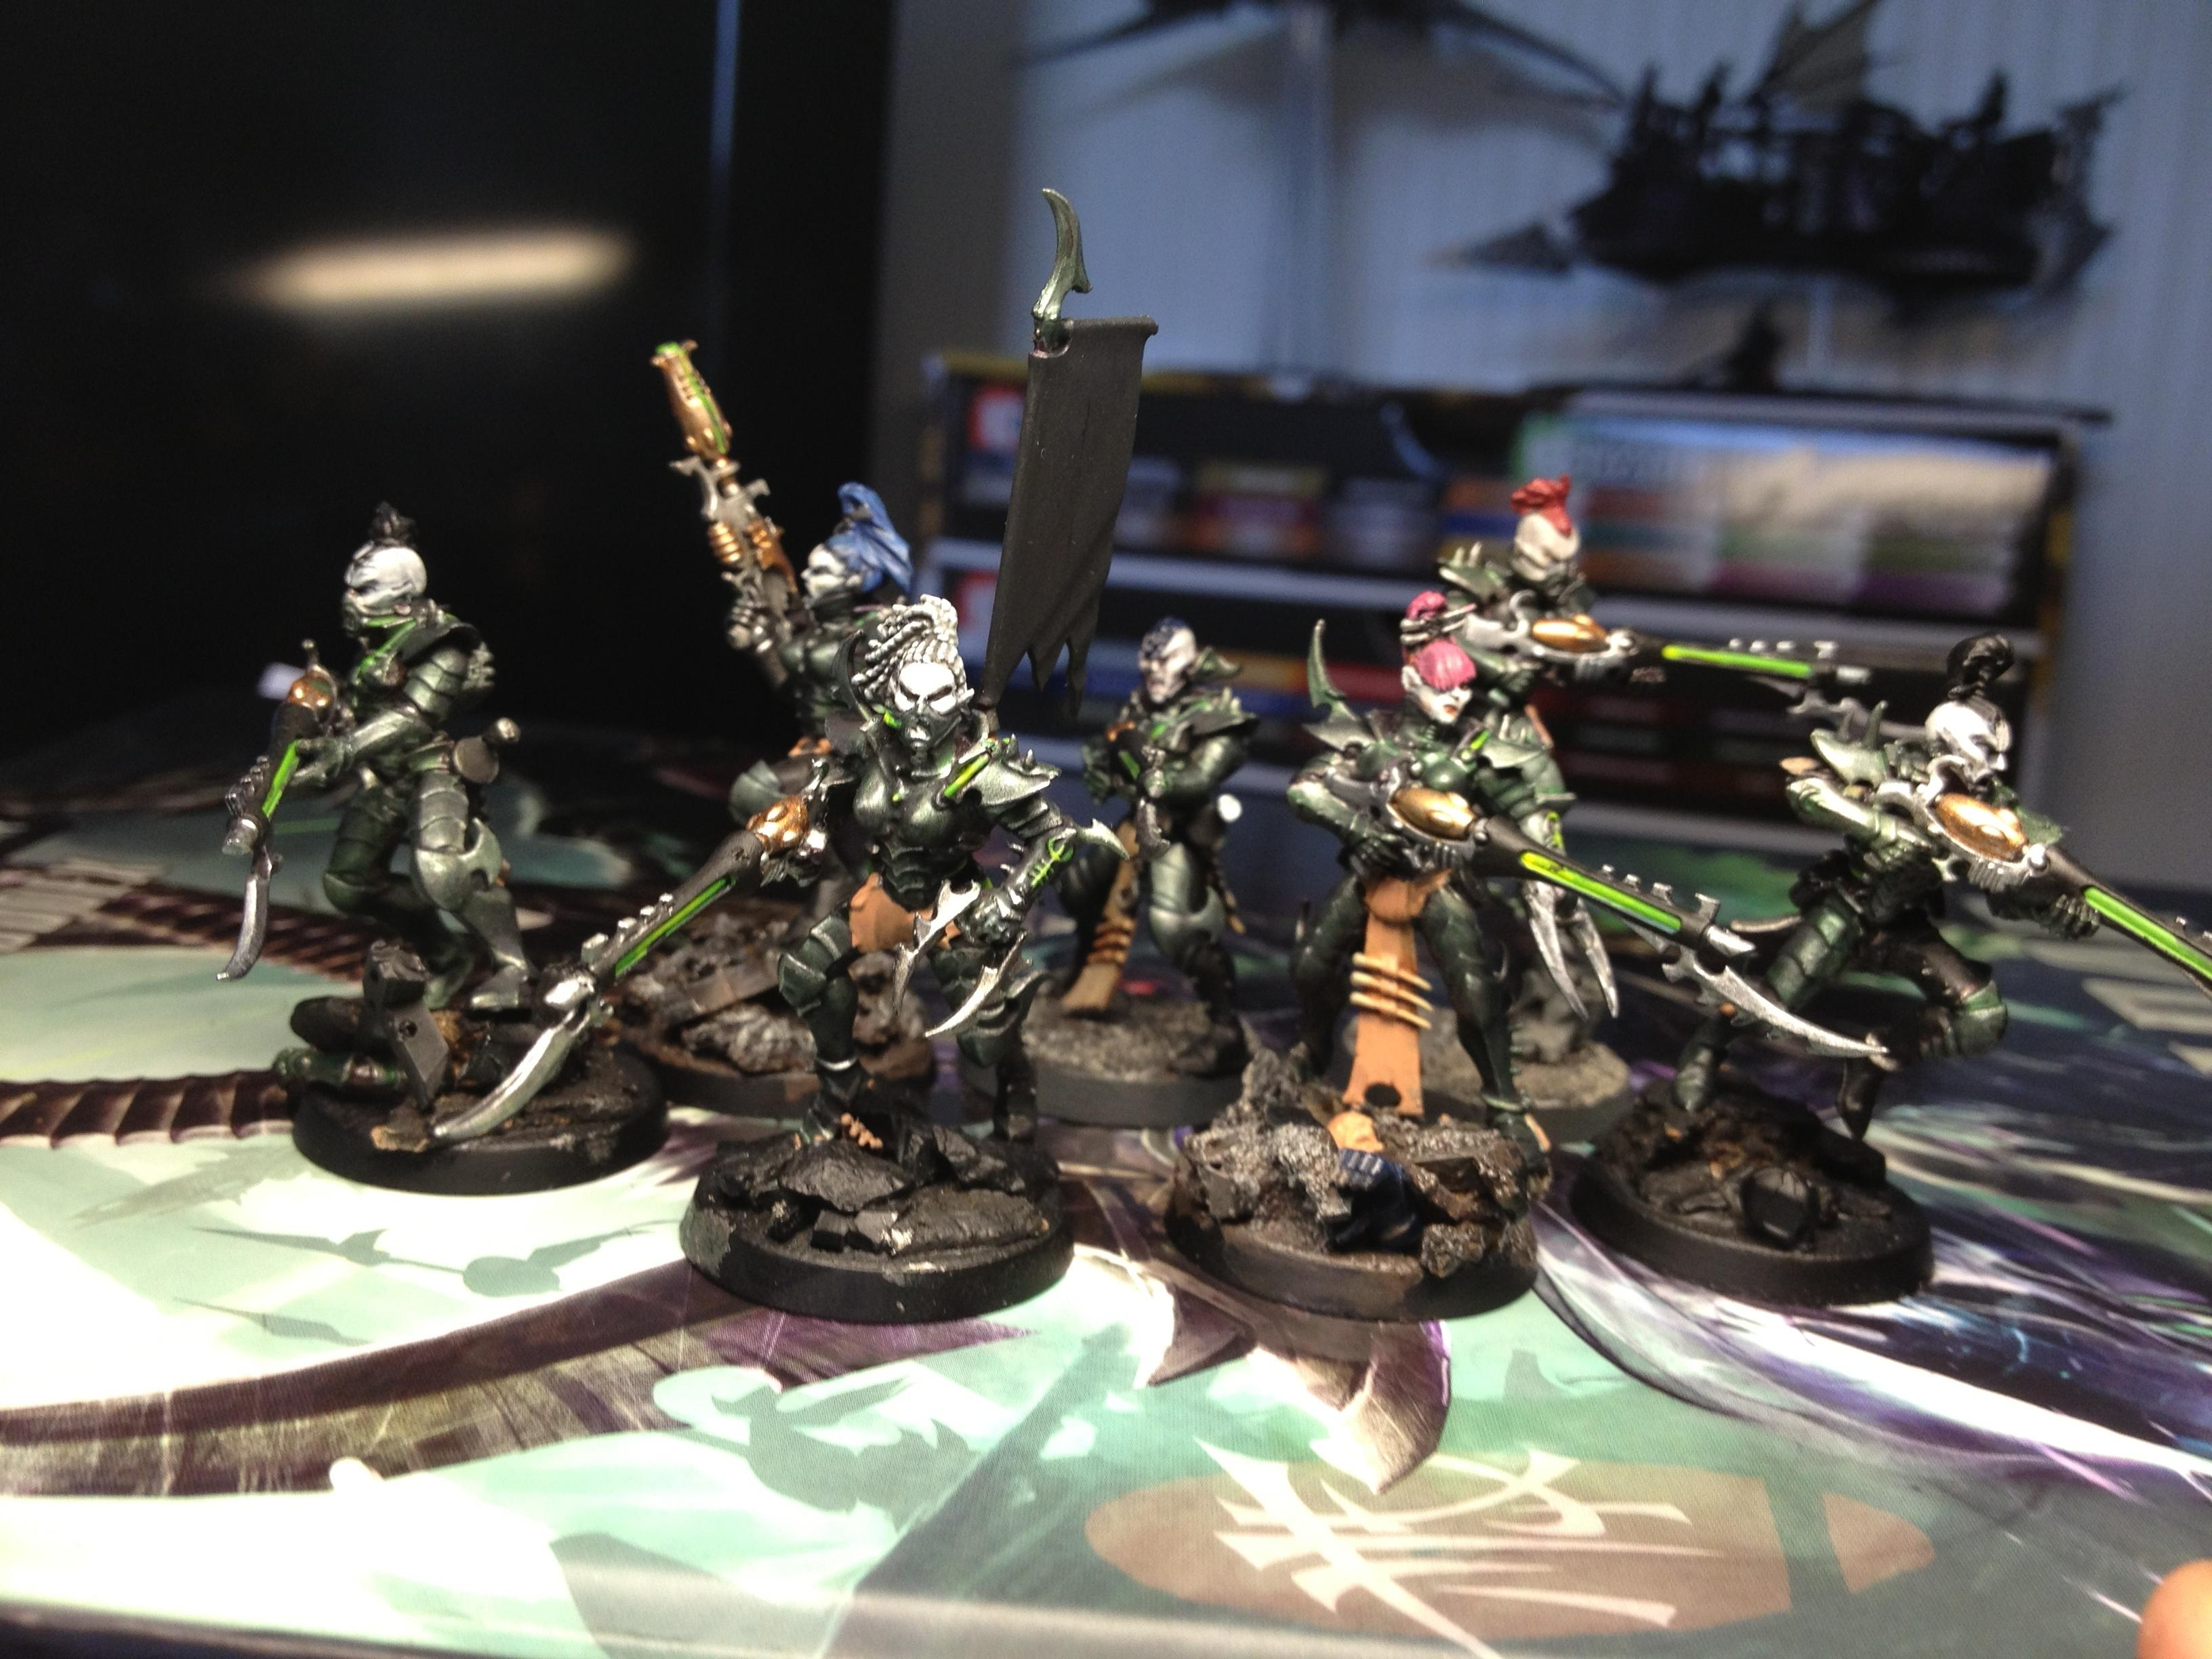 Dark, Eldar, Gamesworkshop, Kabalite, Warhammer 40,000, Warriors